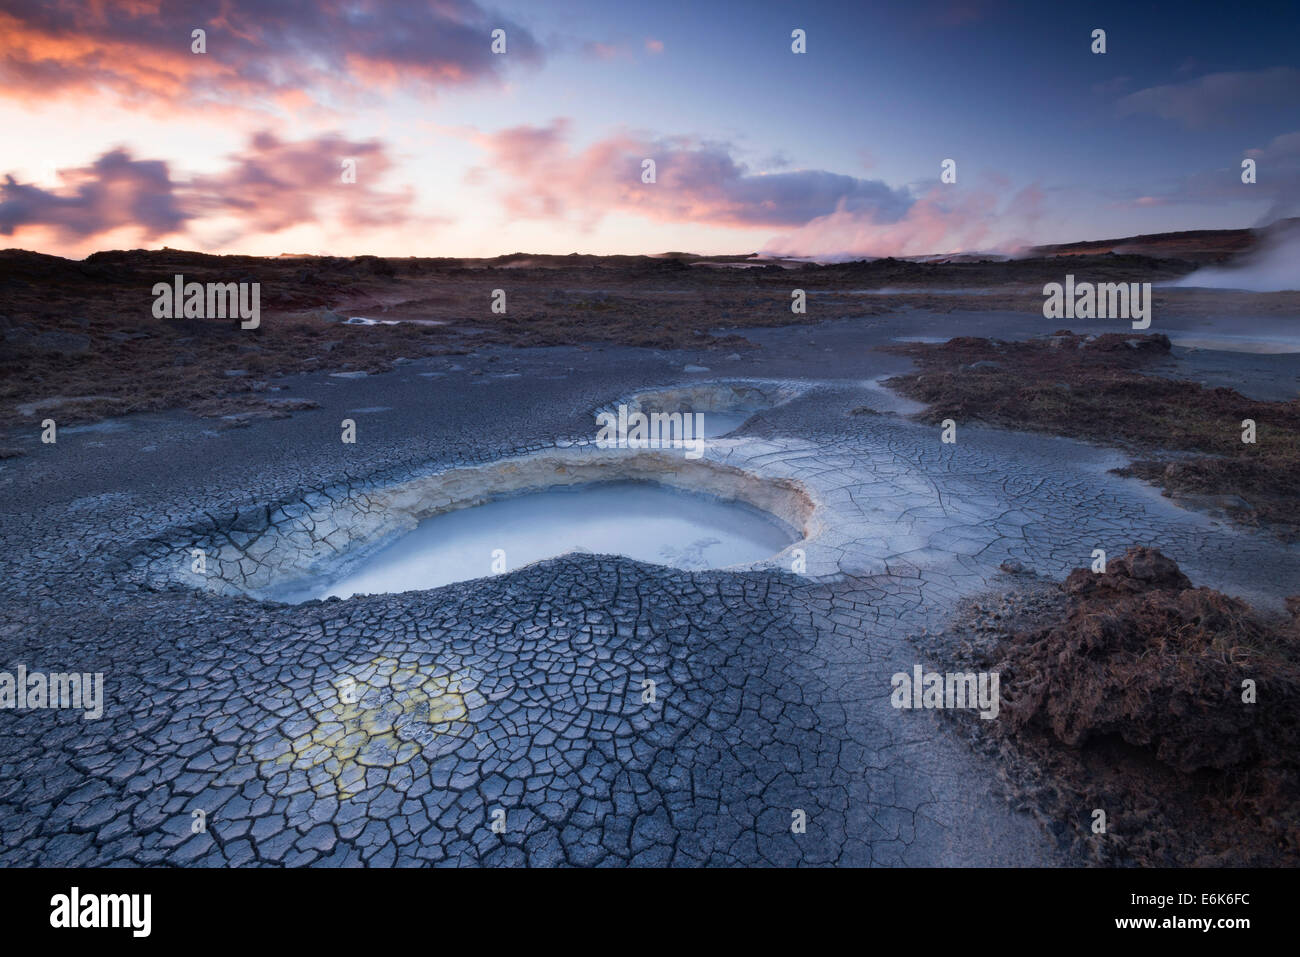 Hot springs in the high temperature geothermal area of Gunnuhver, Reykjanesskagi, Iceland - Stock Image